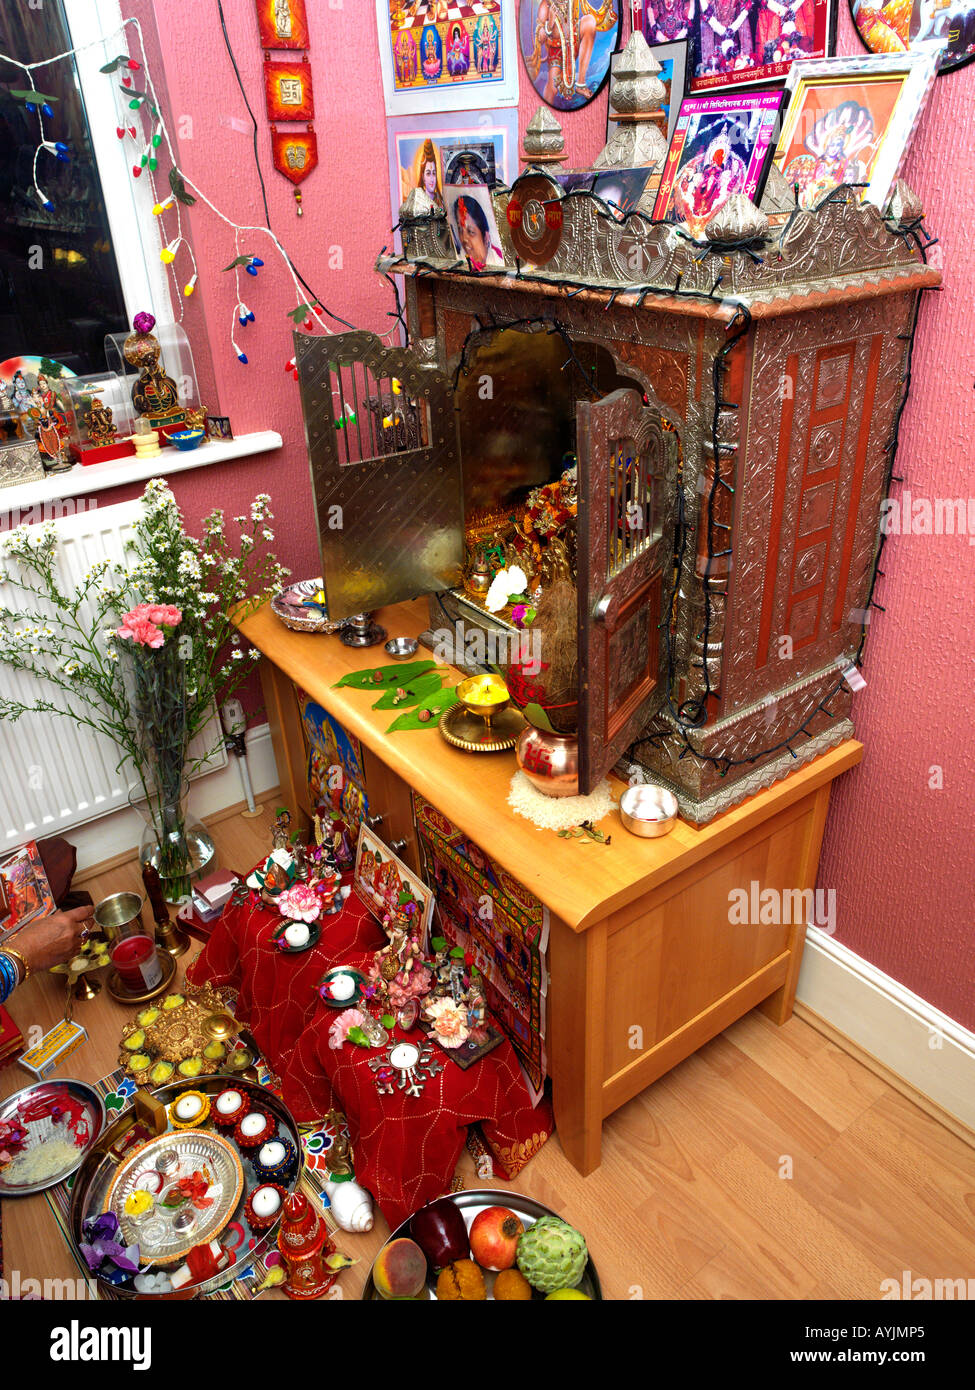 Best Kitchen Gallery: Family And Durga Shrine On Diwali Celebrations At Home Tooting of Hindu Altar At Home on rachelxblog.com